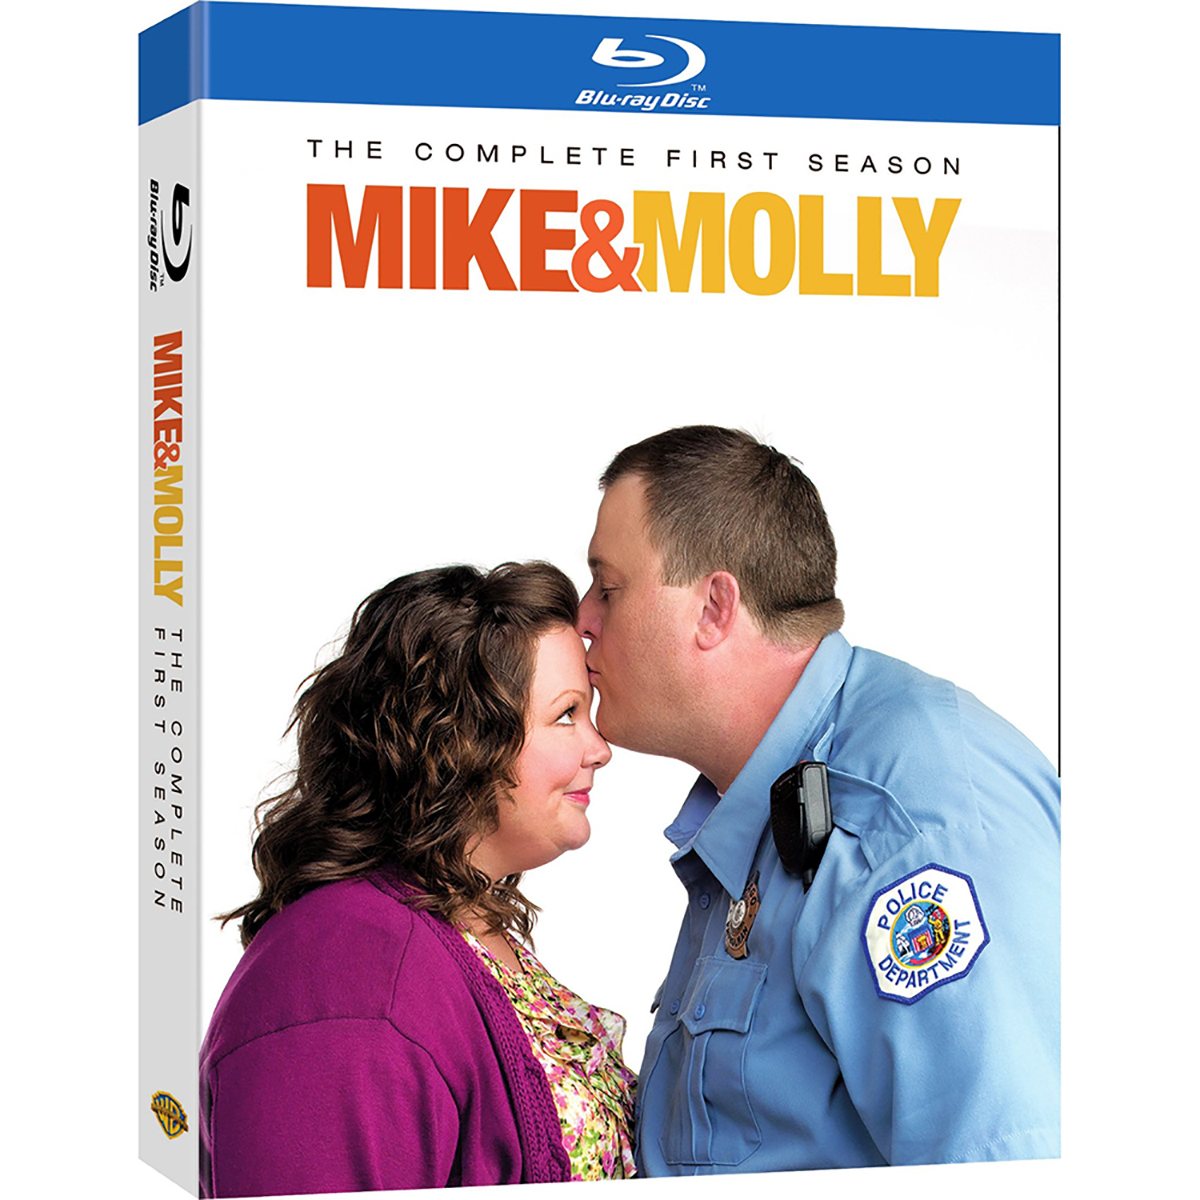 Mike & Molly: Season 1 Blu-ray -  DVDs & Videos 4334-303809